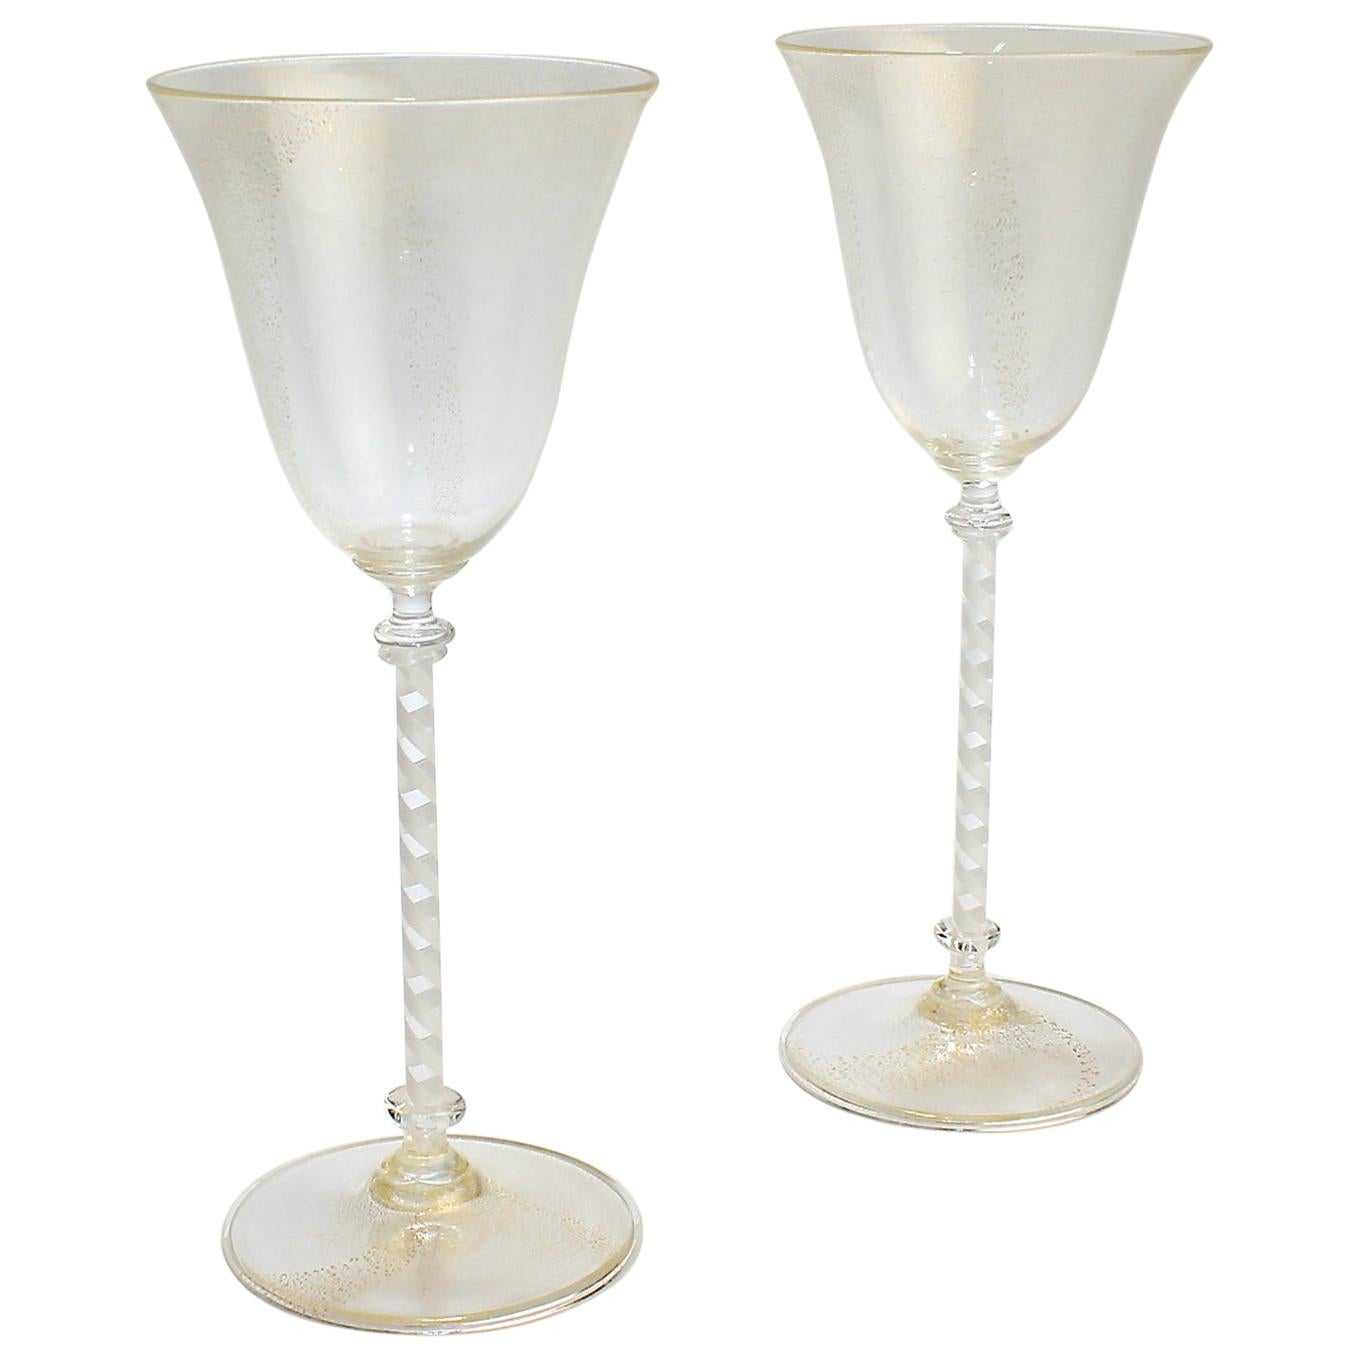 Pair of Venetian Glass Wine Goblets with White Twist Stems and Gold Inclusions